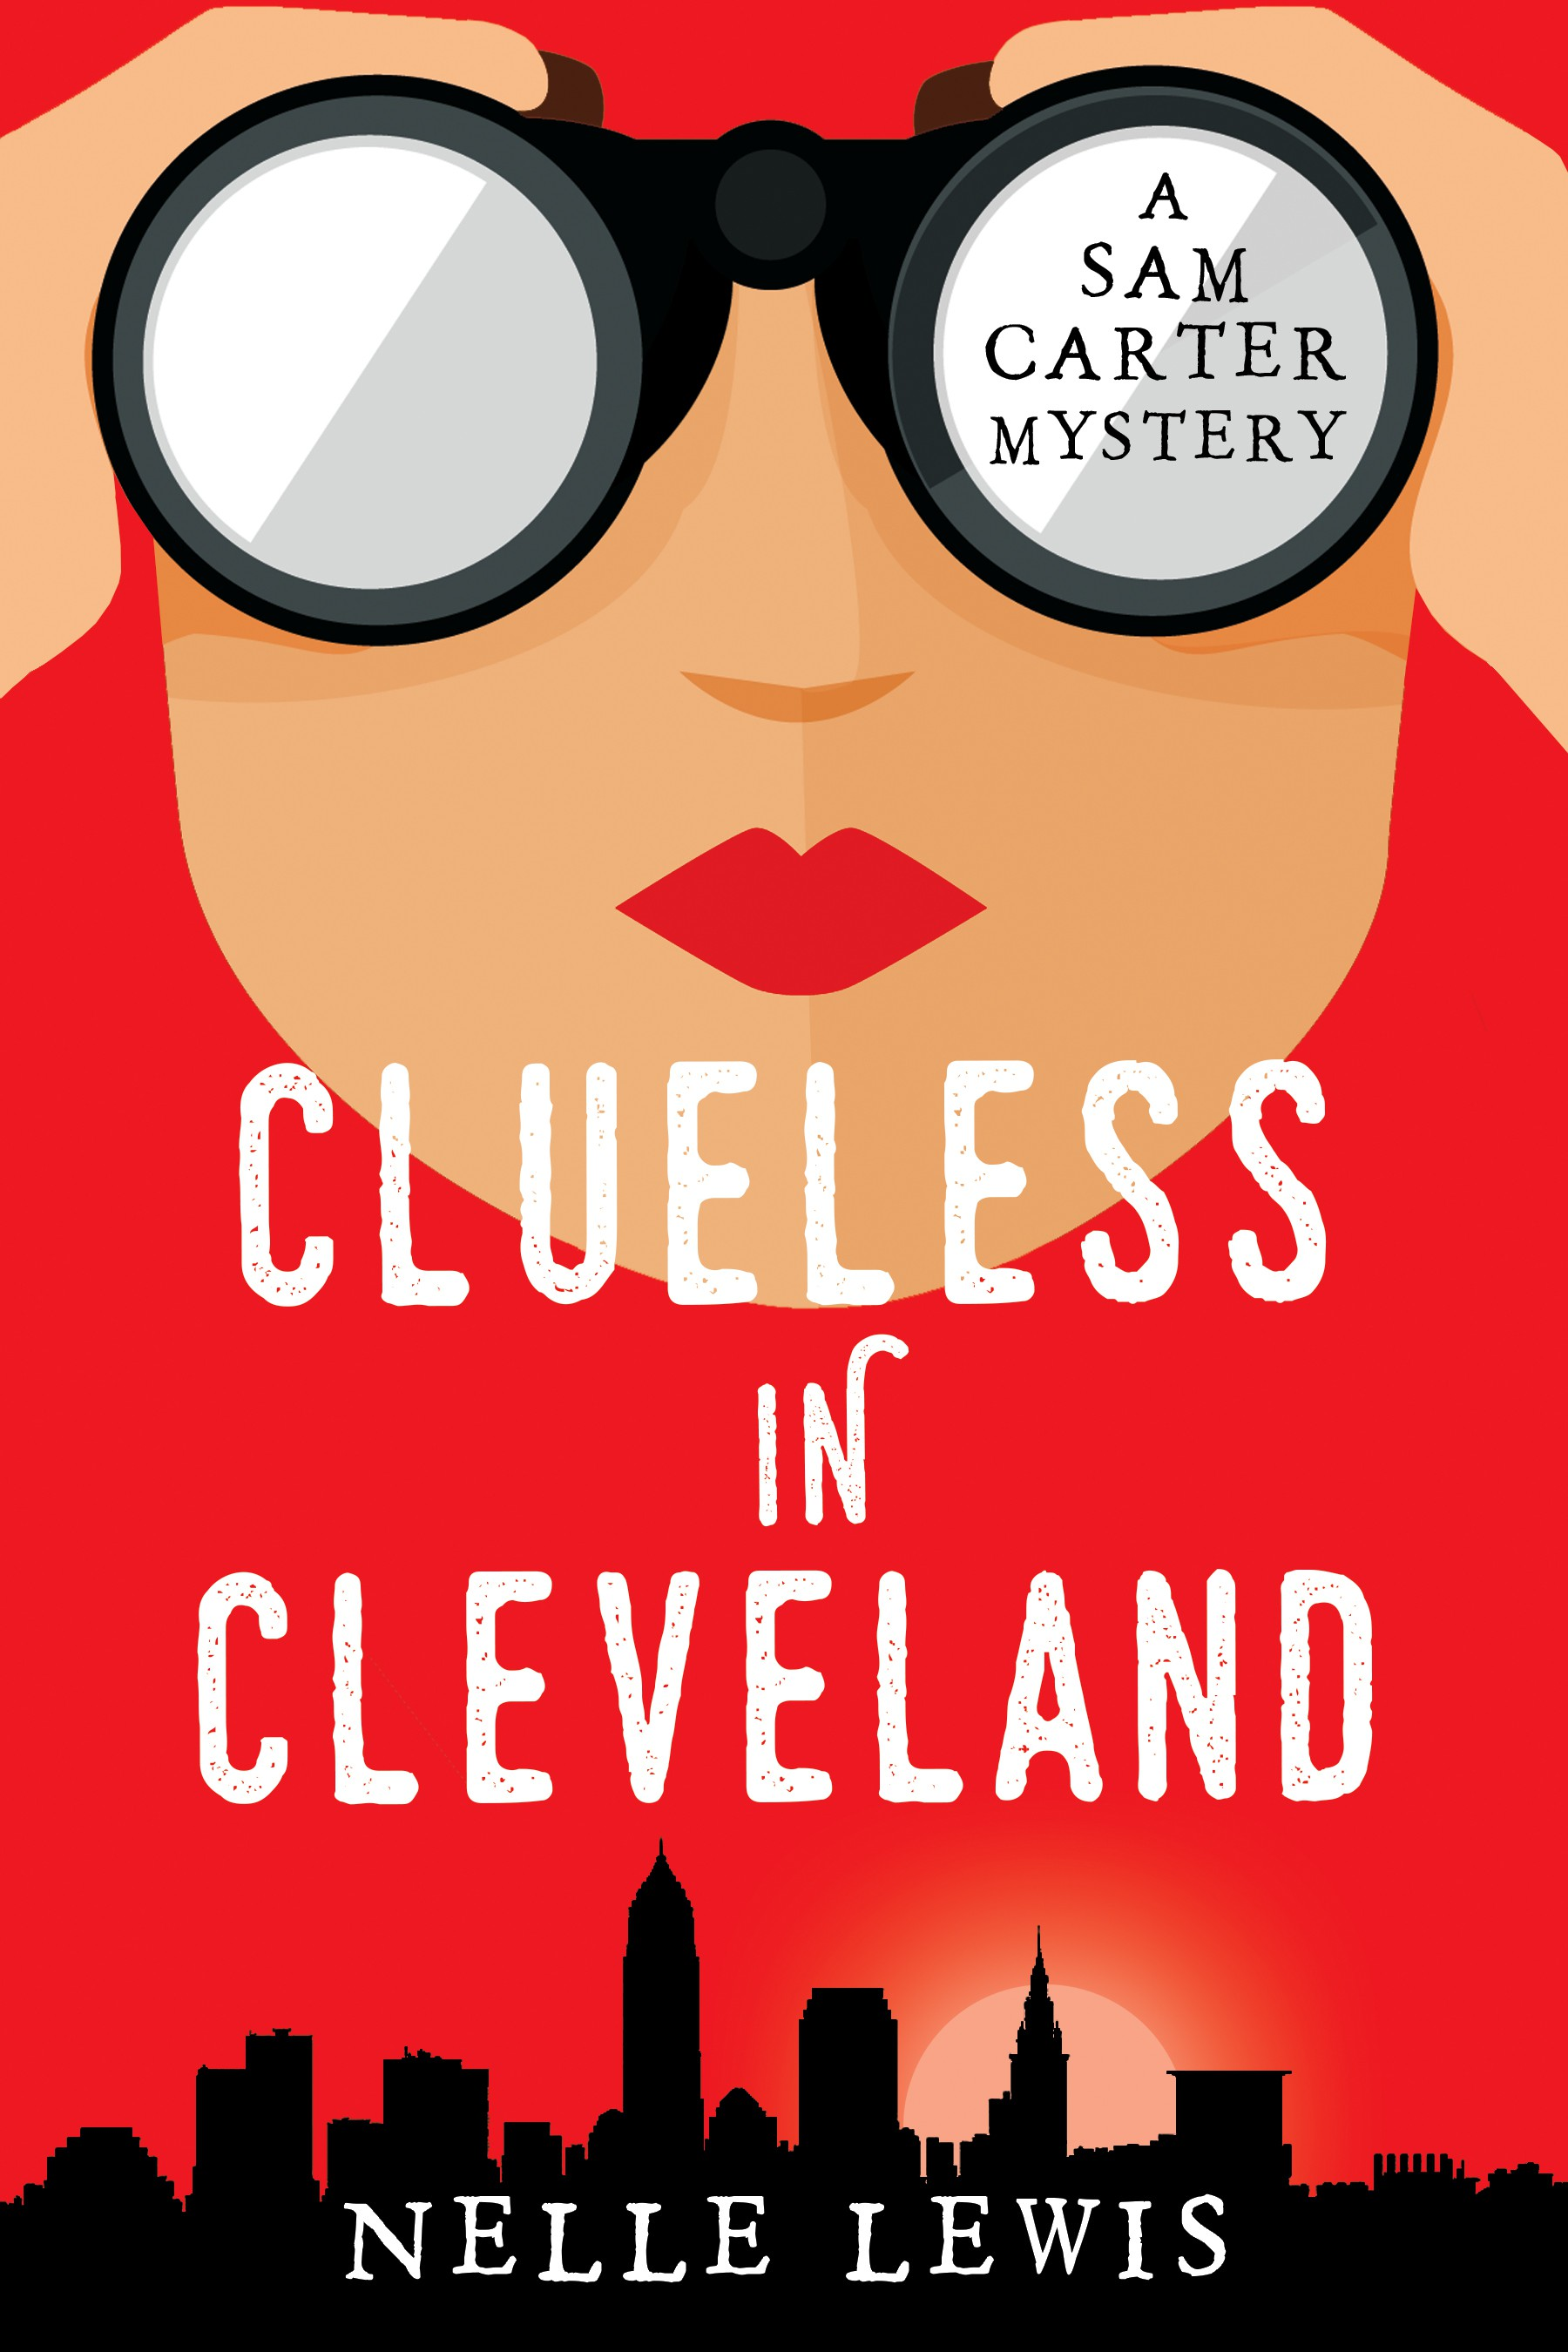 Get Your Artist on for this Writer's New Mystery Series Book Cover